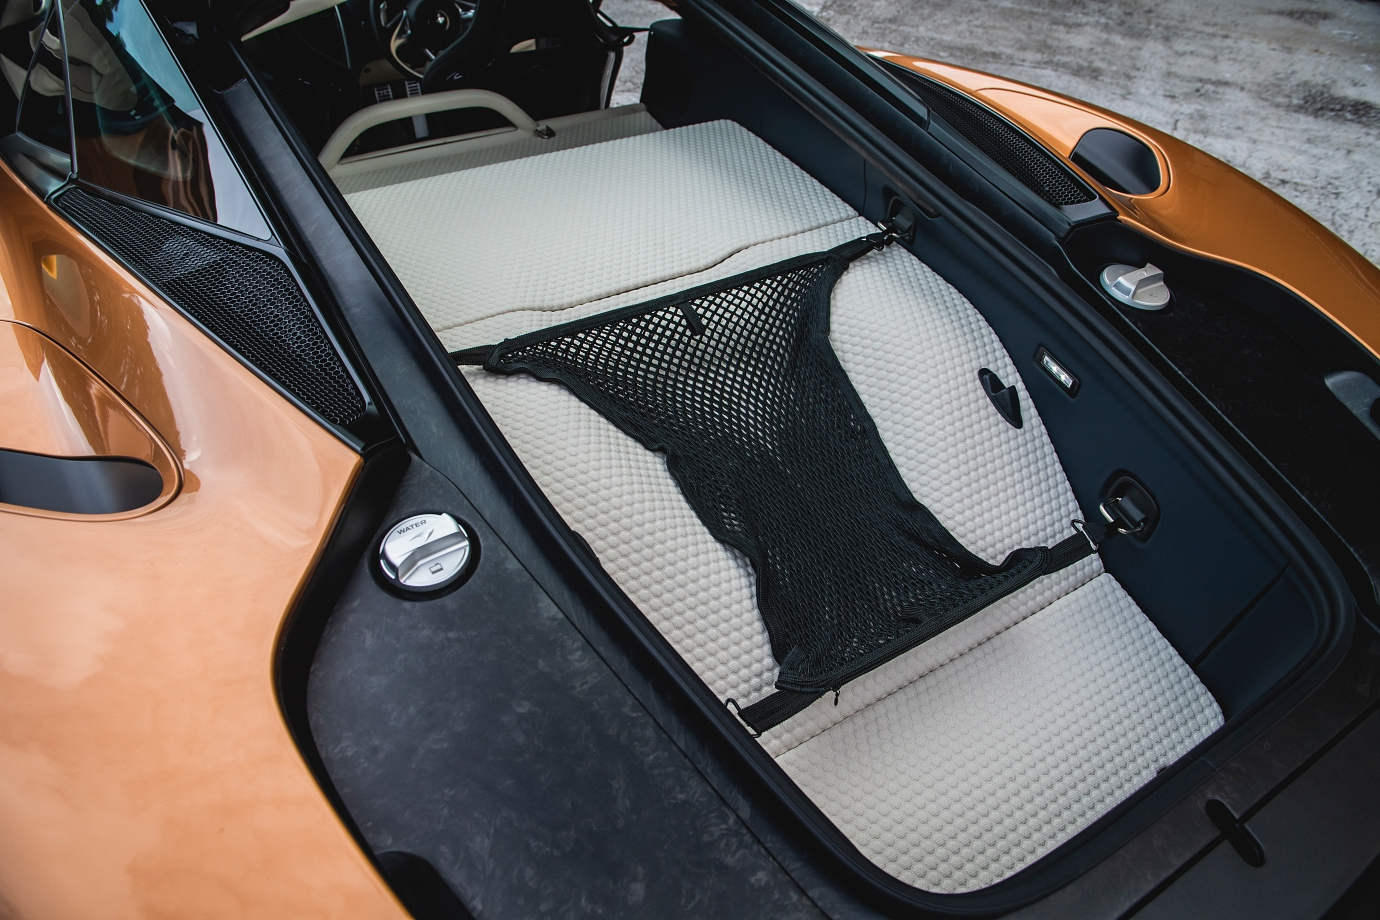 Up to 420-litres of storage capacity. Note carbonfibre frame for added rigidity